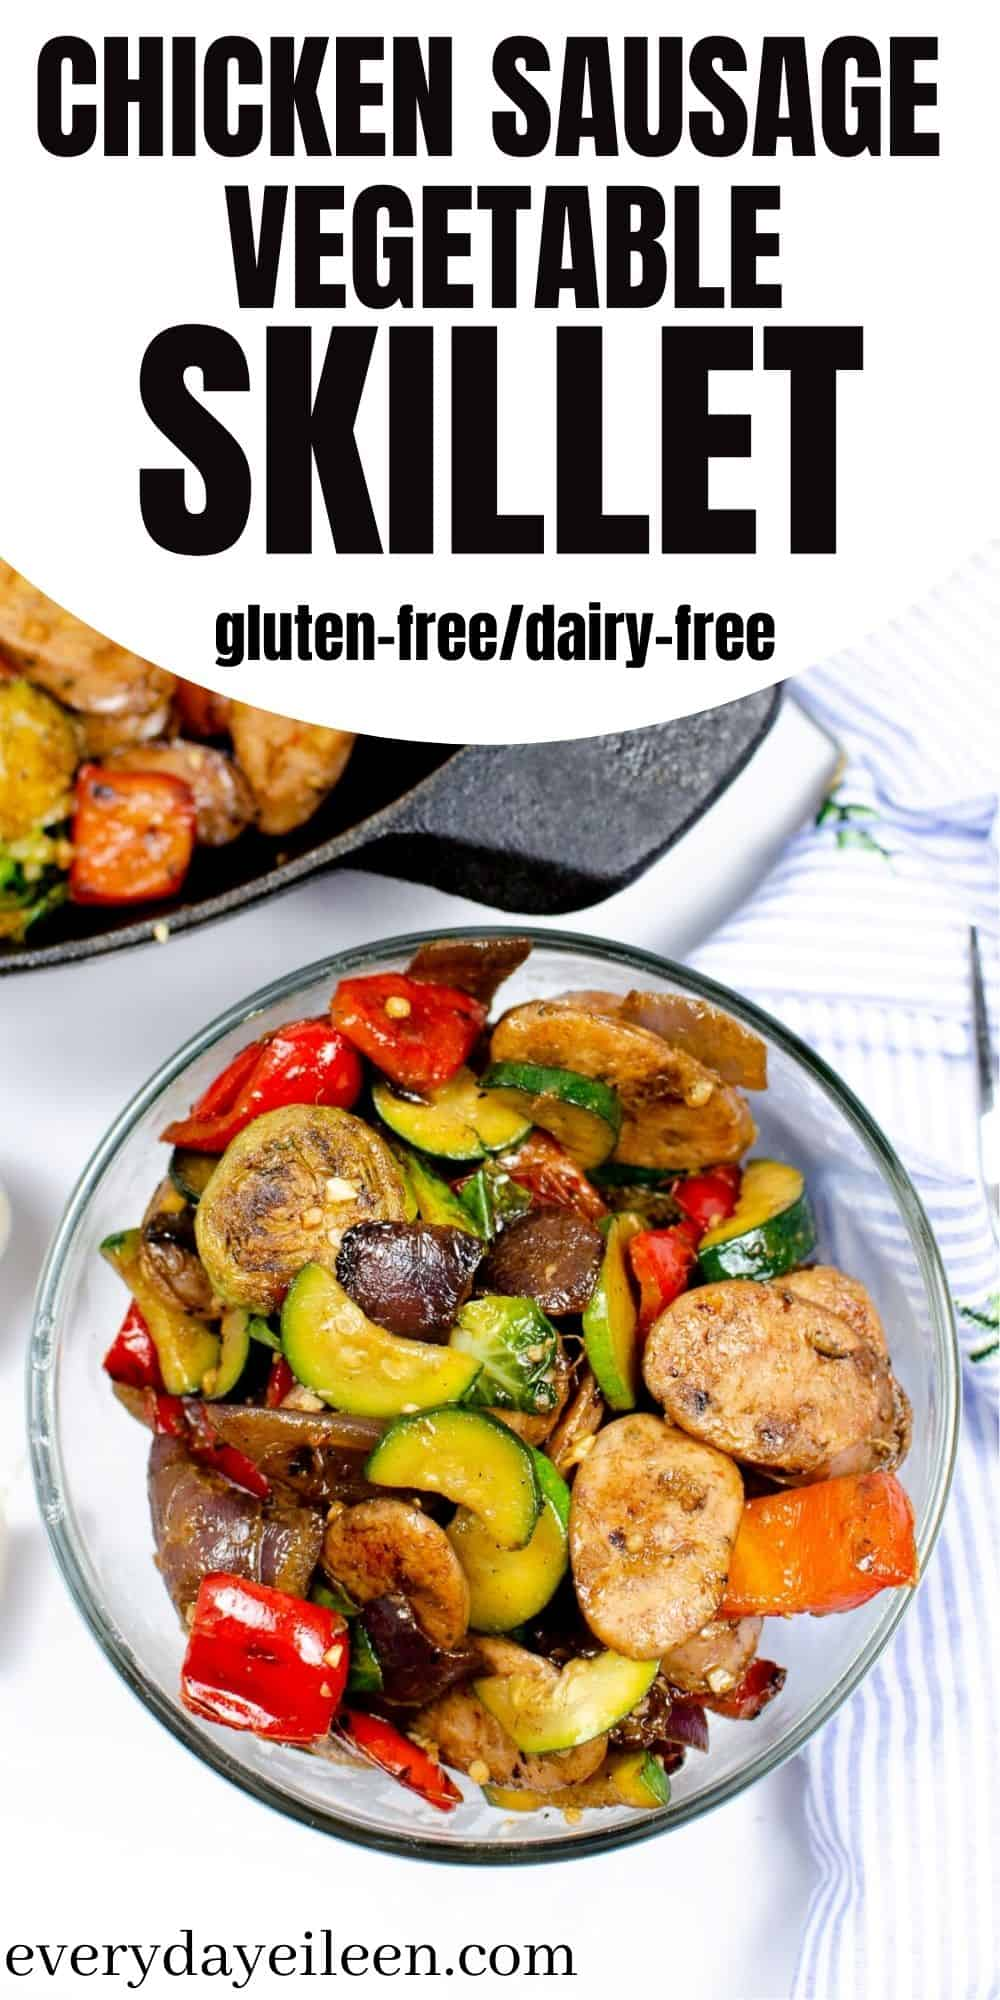 Chicken Sausage Vegetable Skillet, a one pan dinner that is ready in 25 minutes. This is a low-calorie, gluten-free, dairy-free, and lower in carbs. A hearty, better for you meal loaded with protein and veggies. #chickensausageveggieskillet #chickensausagerecipe #onepanchickensausagedinner #everydayeileen via @/everydayeileen/